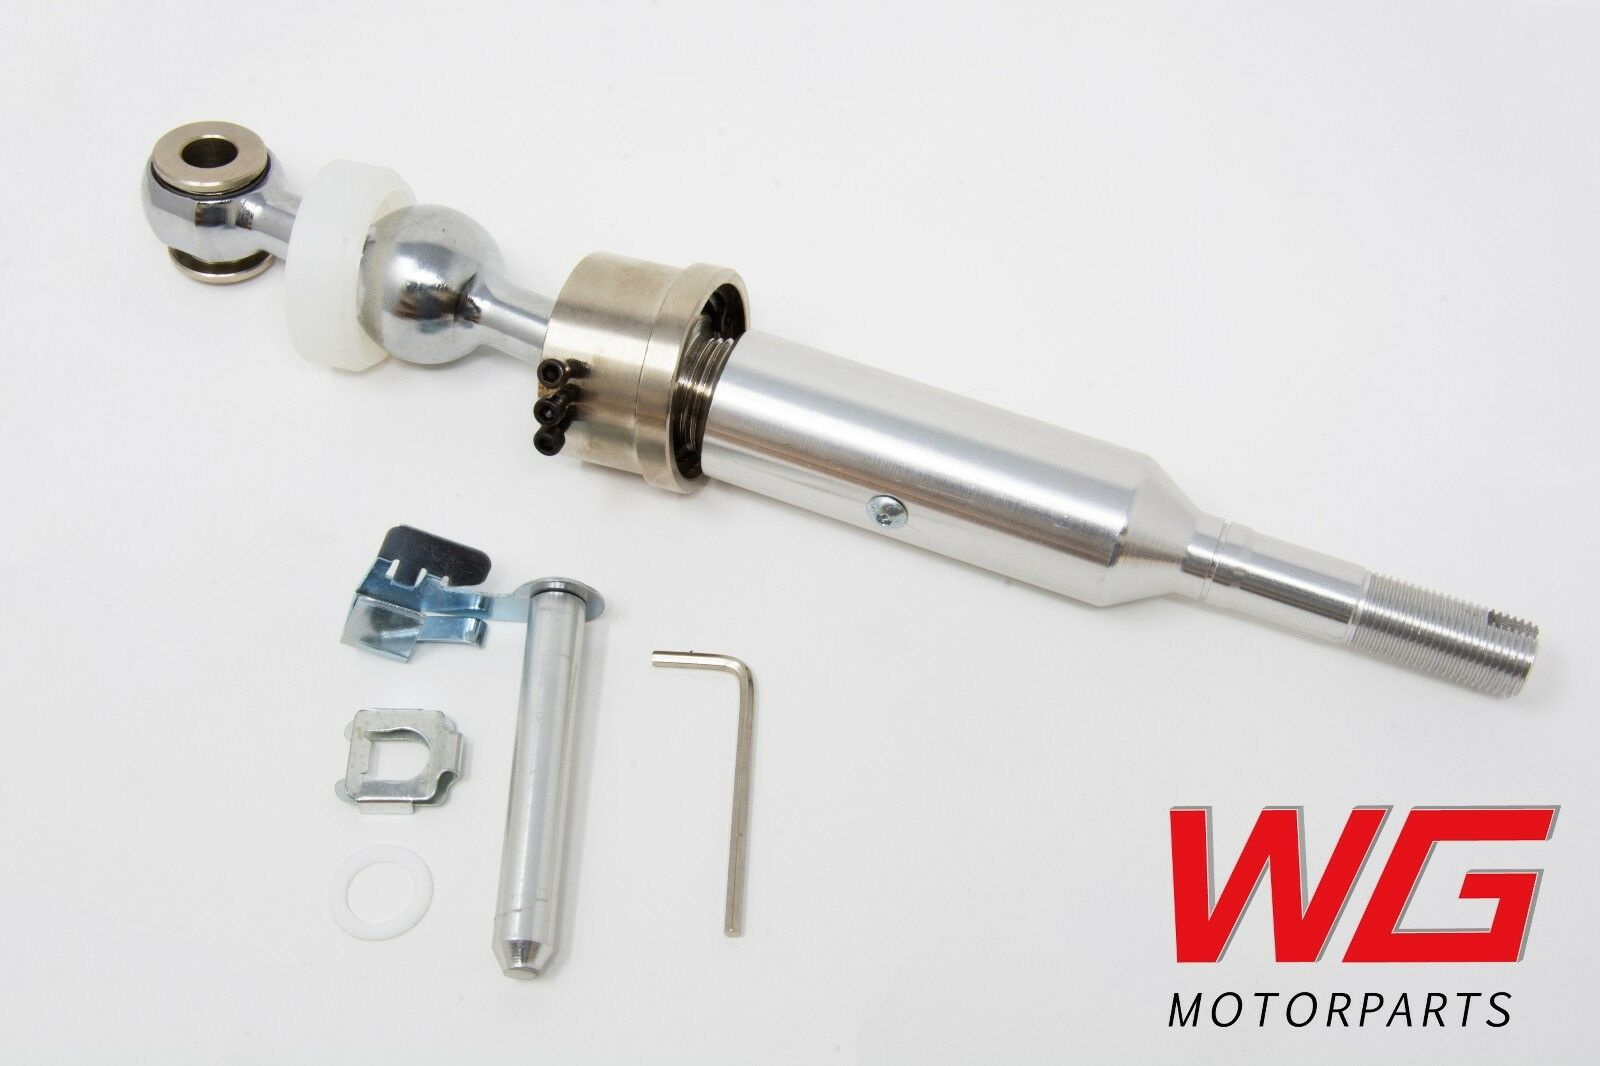 BMW 540i Sport E39 (1997 - 2003) 6 Speed Short Shifter Quick Shift Kit WG266